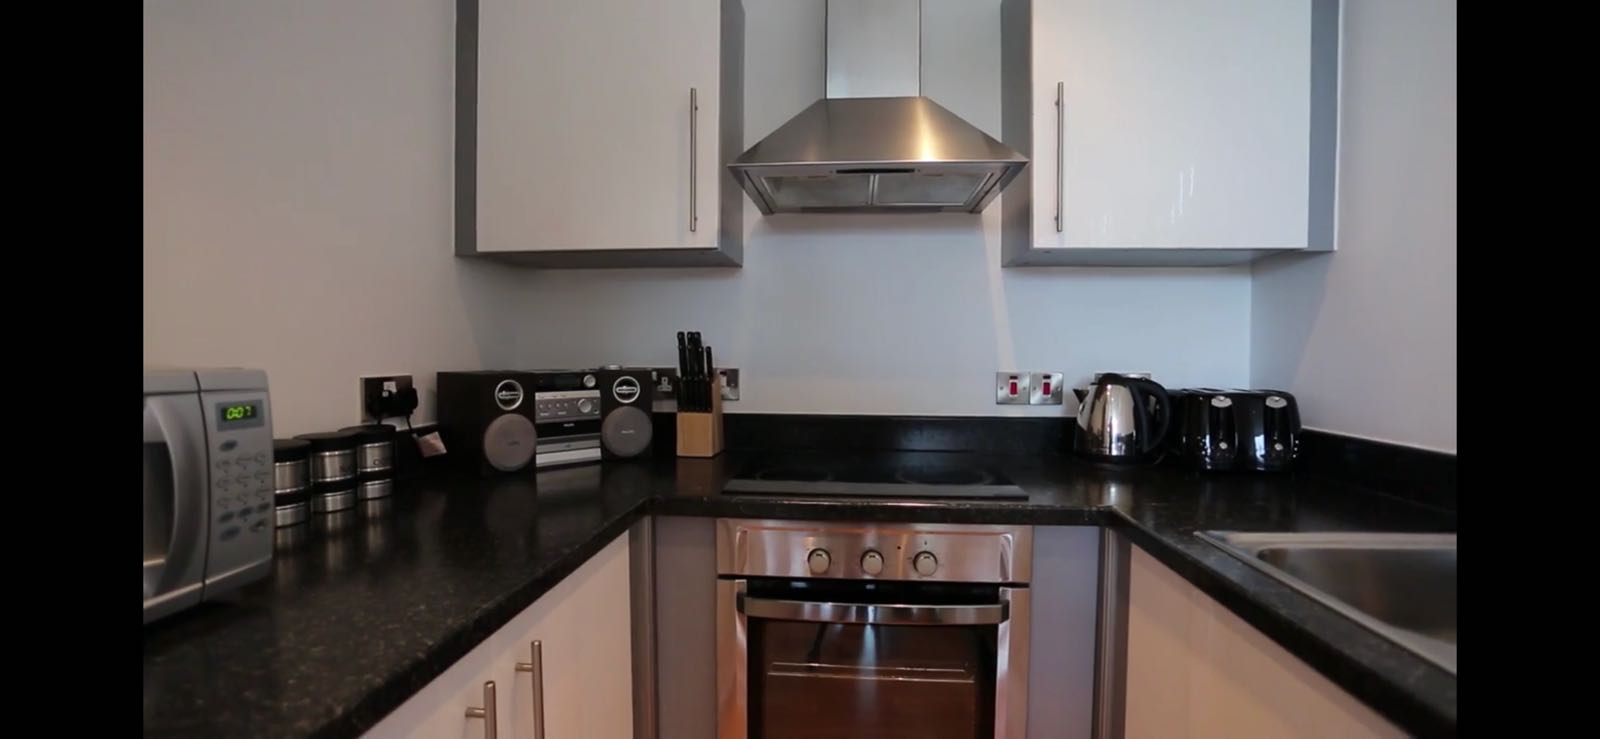 Oven at Quay Serviced Apartments - Citybase Apartments